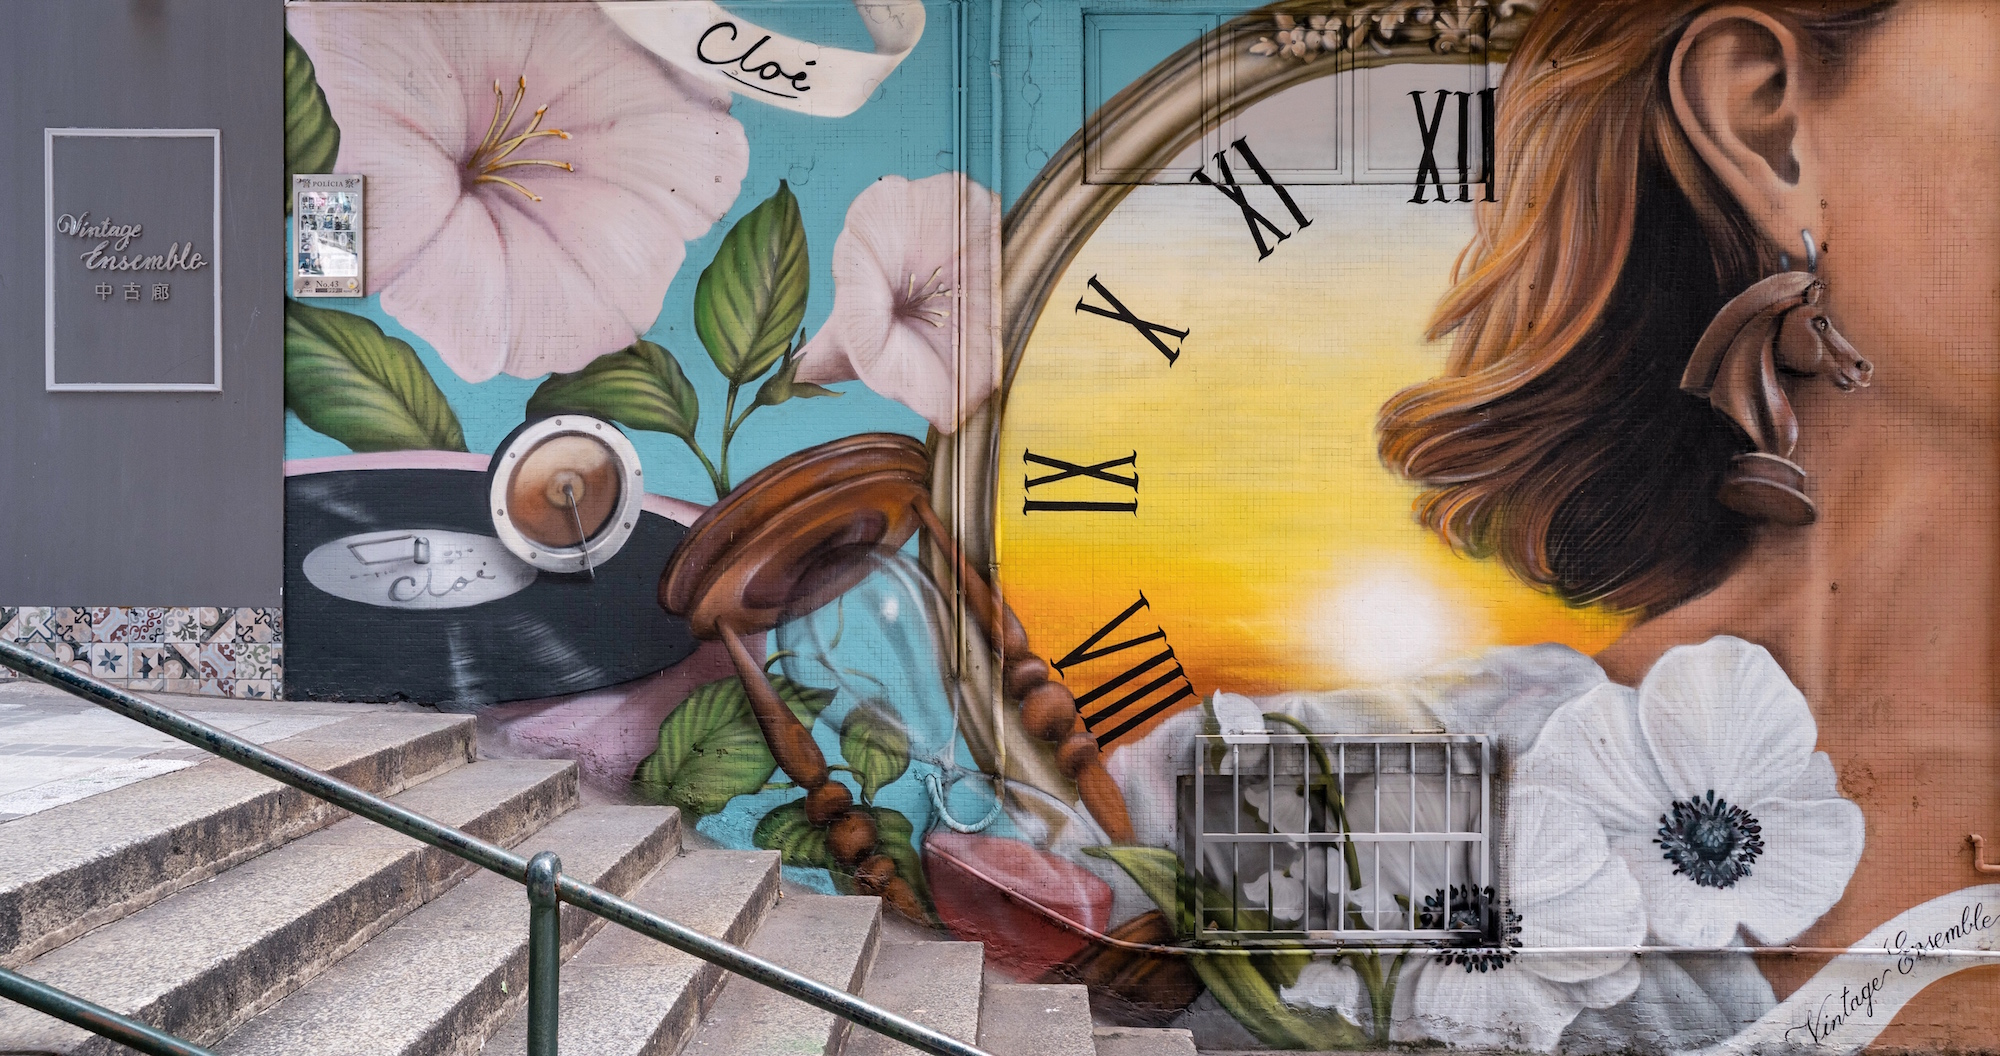 Vitorino Vong Wall Paint of a Clock and a Woman on Stairs Outside